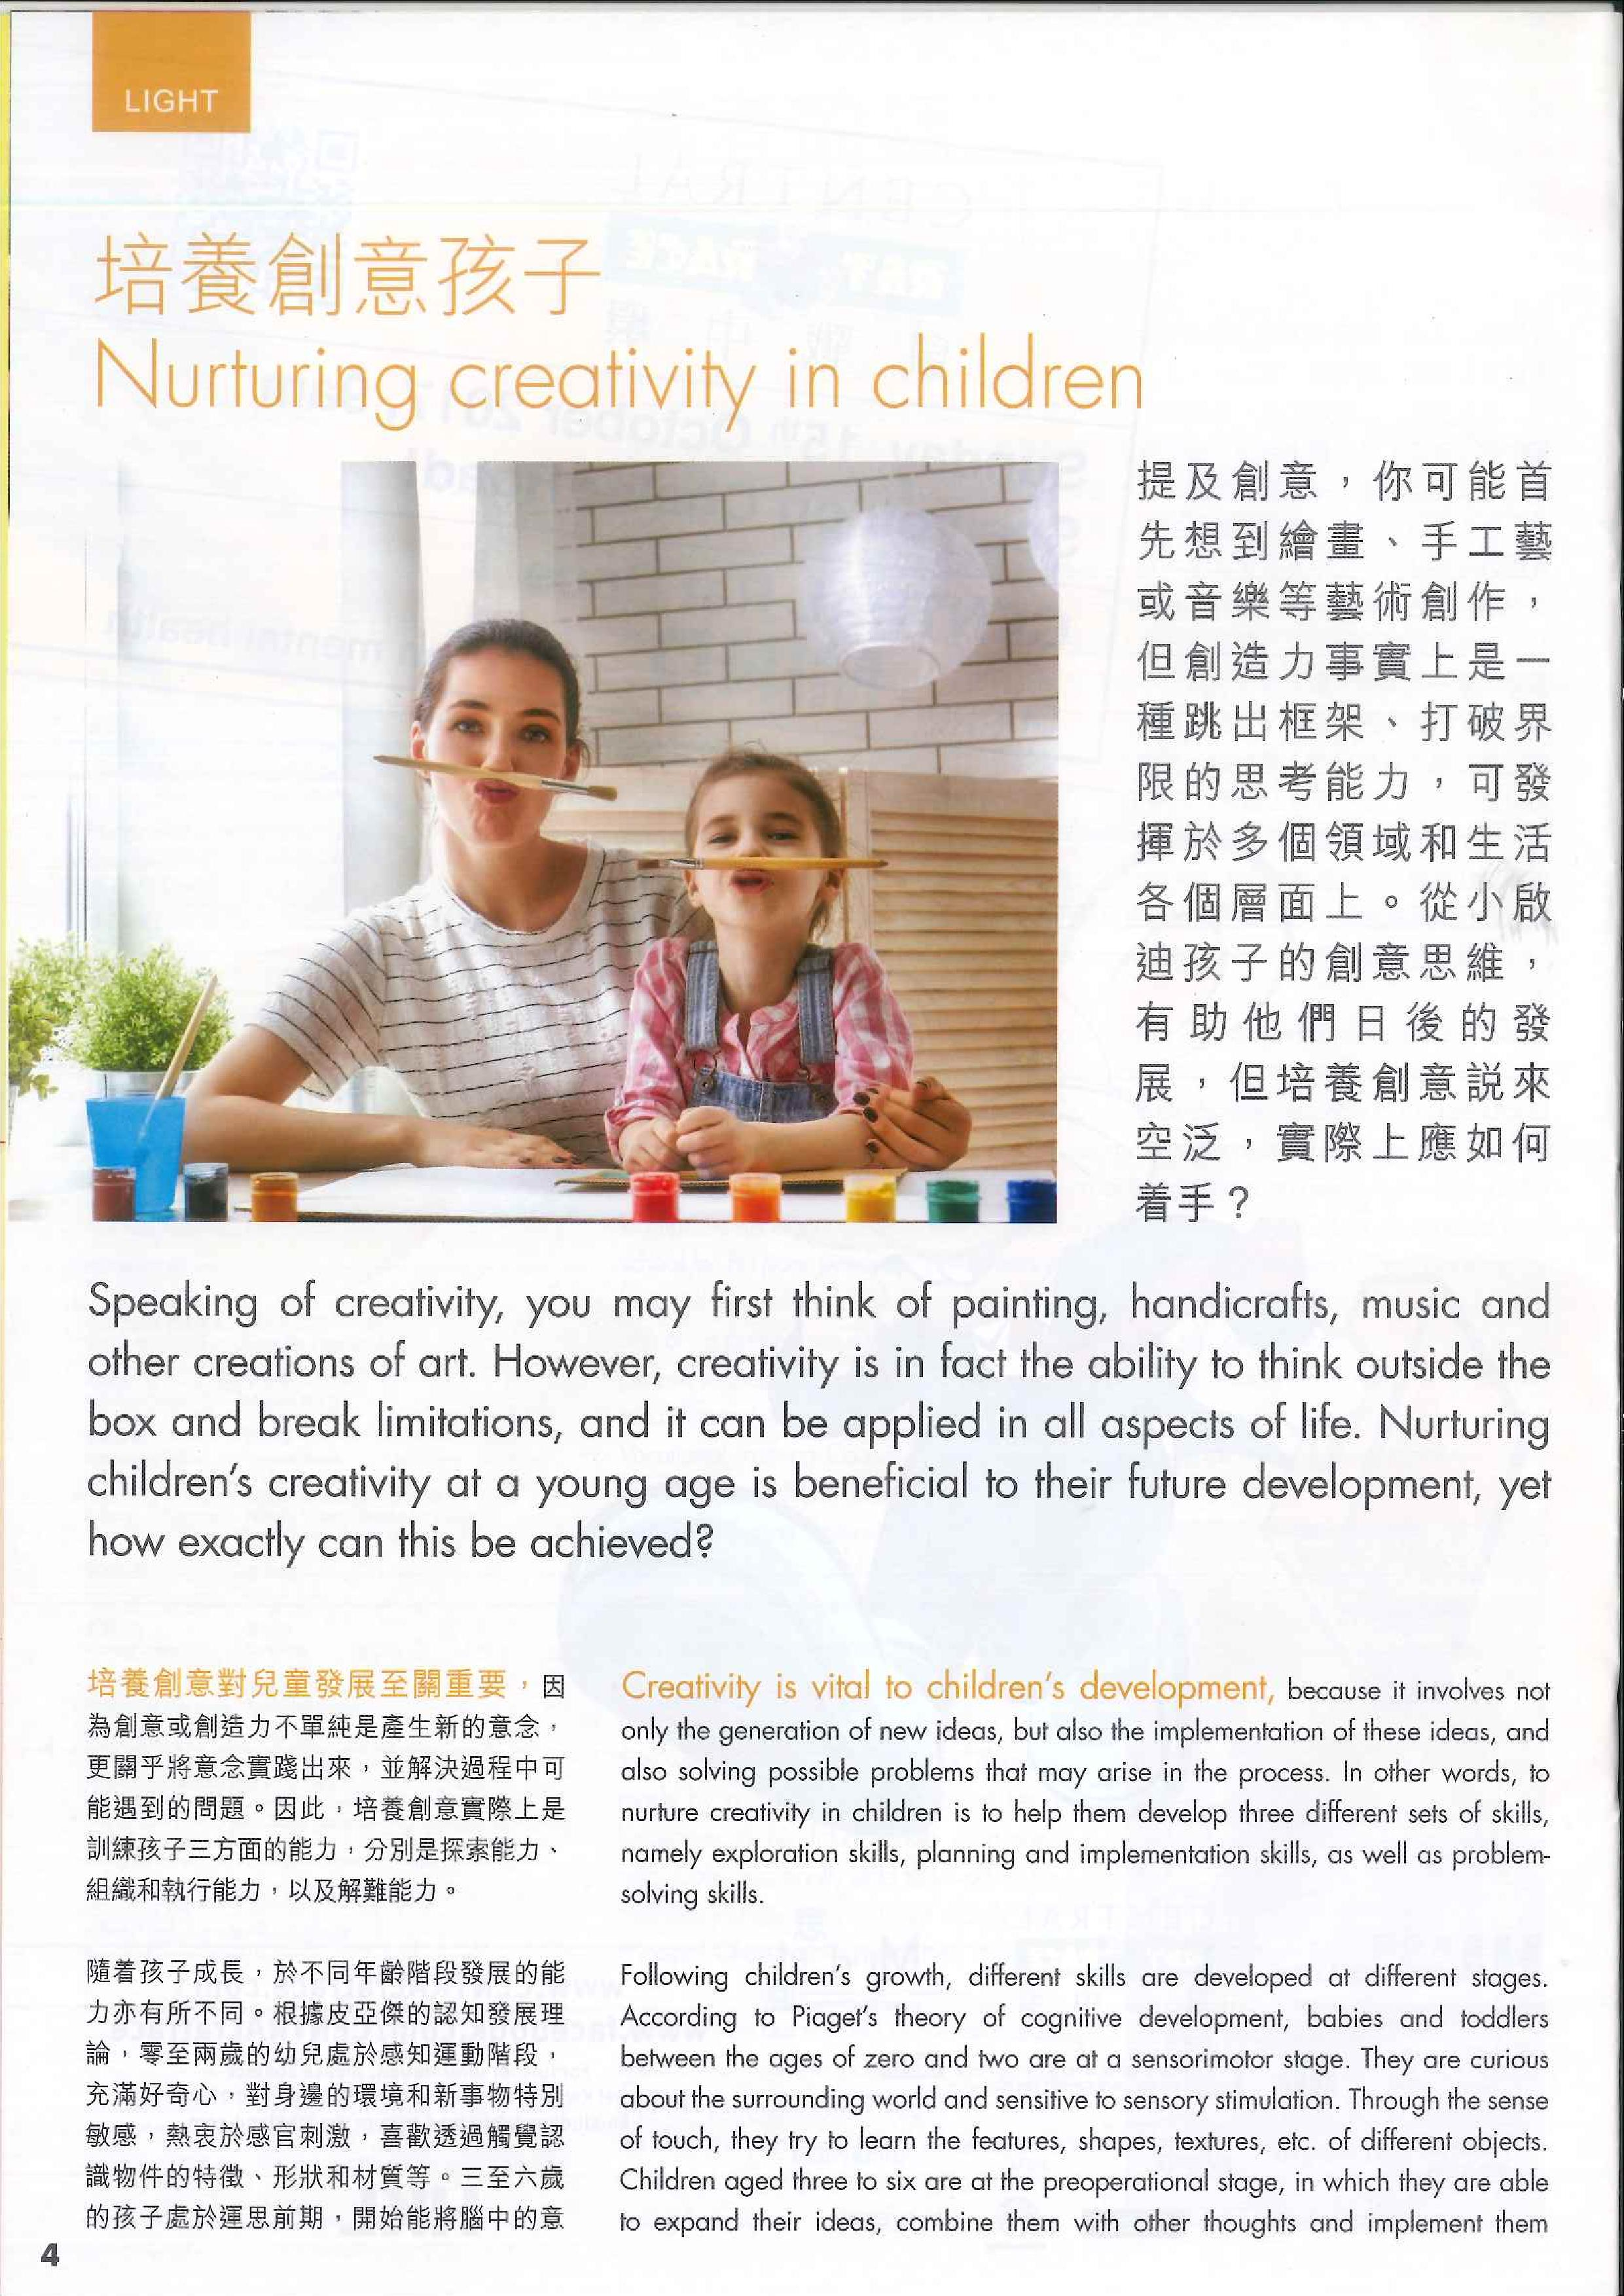 Yellow Bus July 2017  Nuturing creativity in children